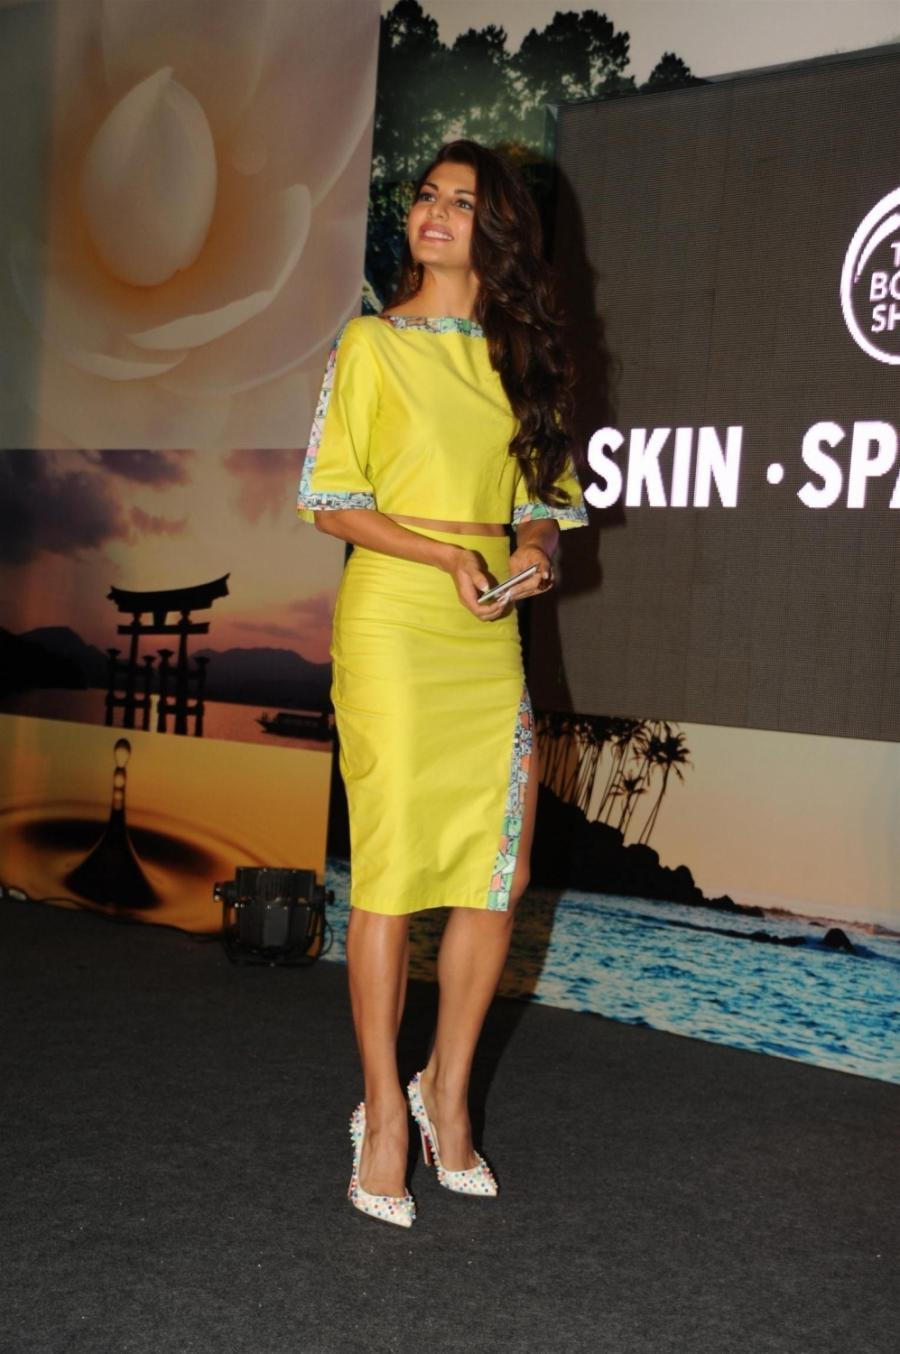 Jacqueline Fernandez Hot Legs Show Photos In Short Yellow Dress